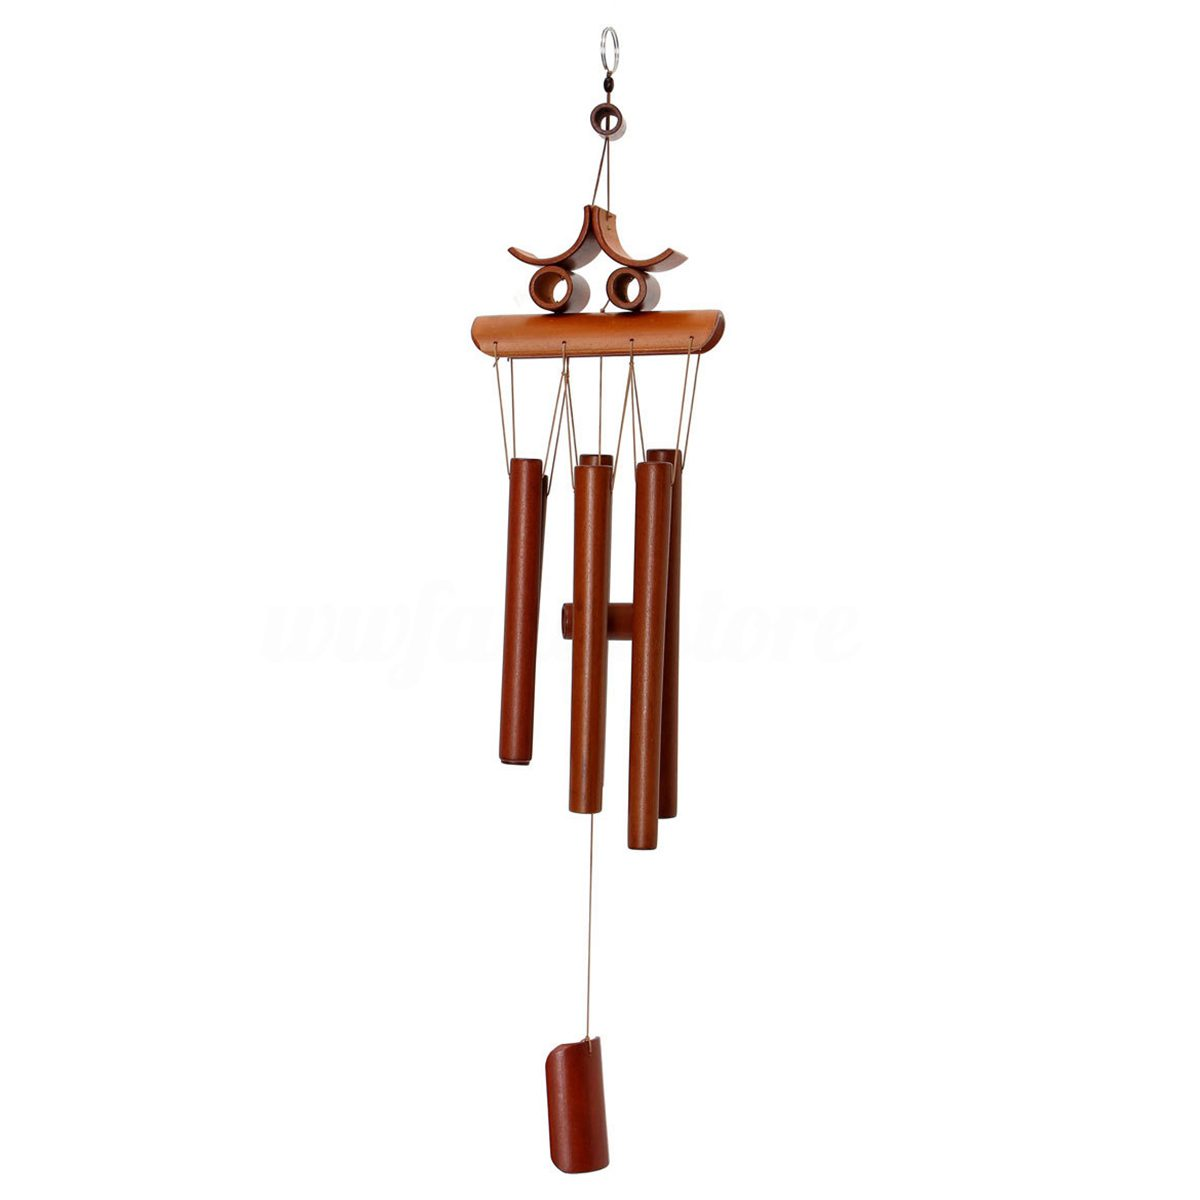 Bamboo Wind Chime Windchime Garden Yard Ornament Decoration Home Decor LuckyBamboo Wind Chime Windchime Garden Yard Ornament Decoration Home Decor Lucky